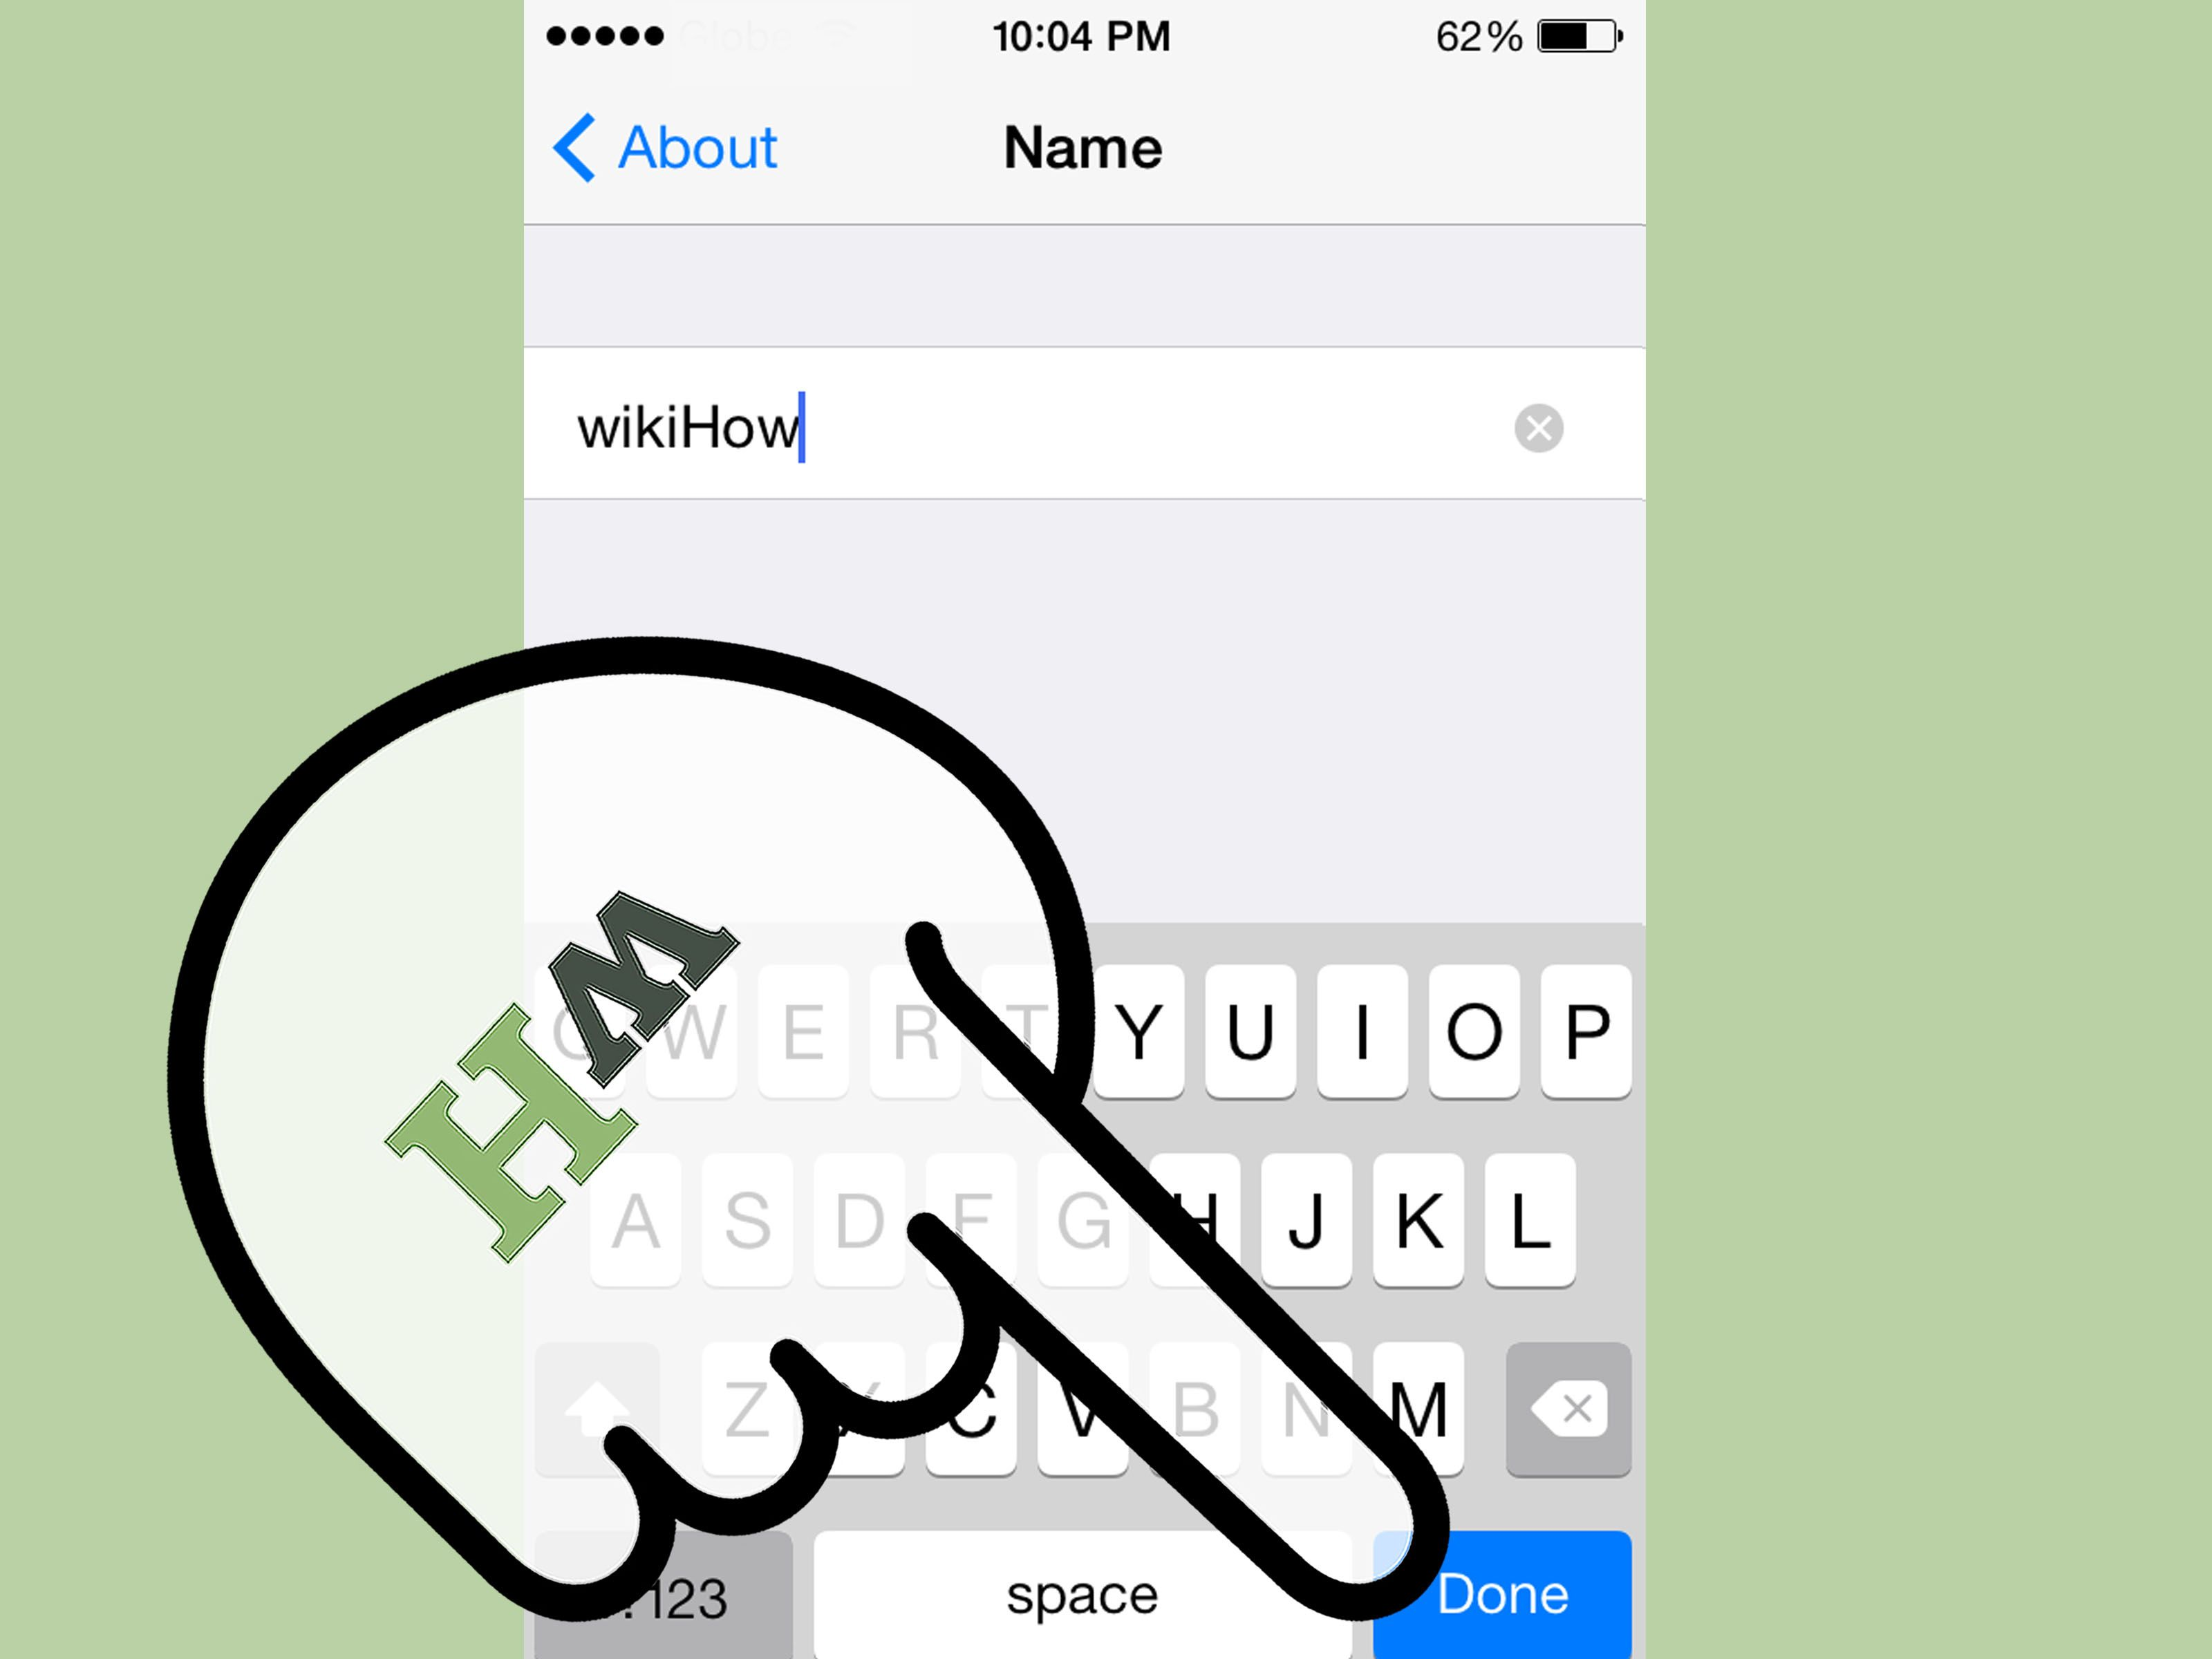 How to change the name of an iphone in ios iphone names